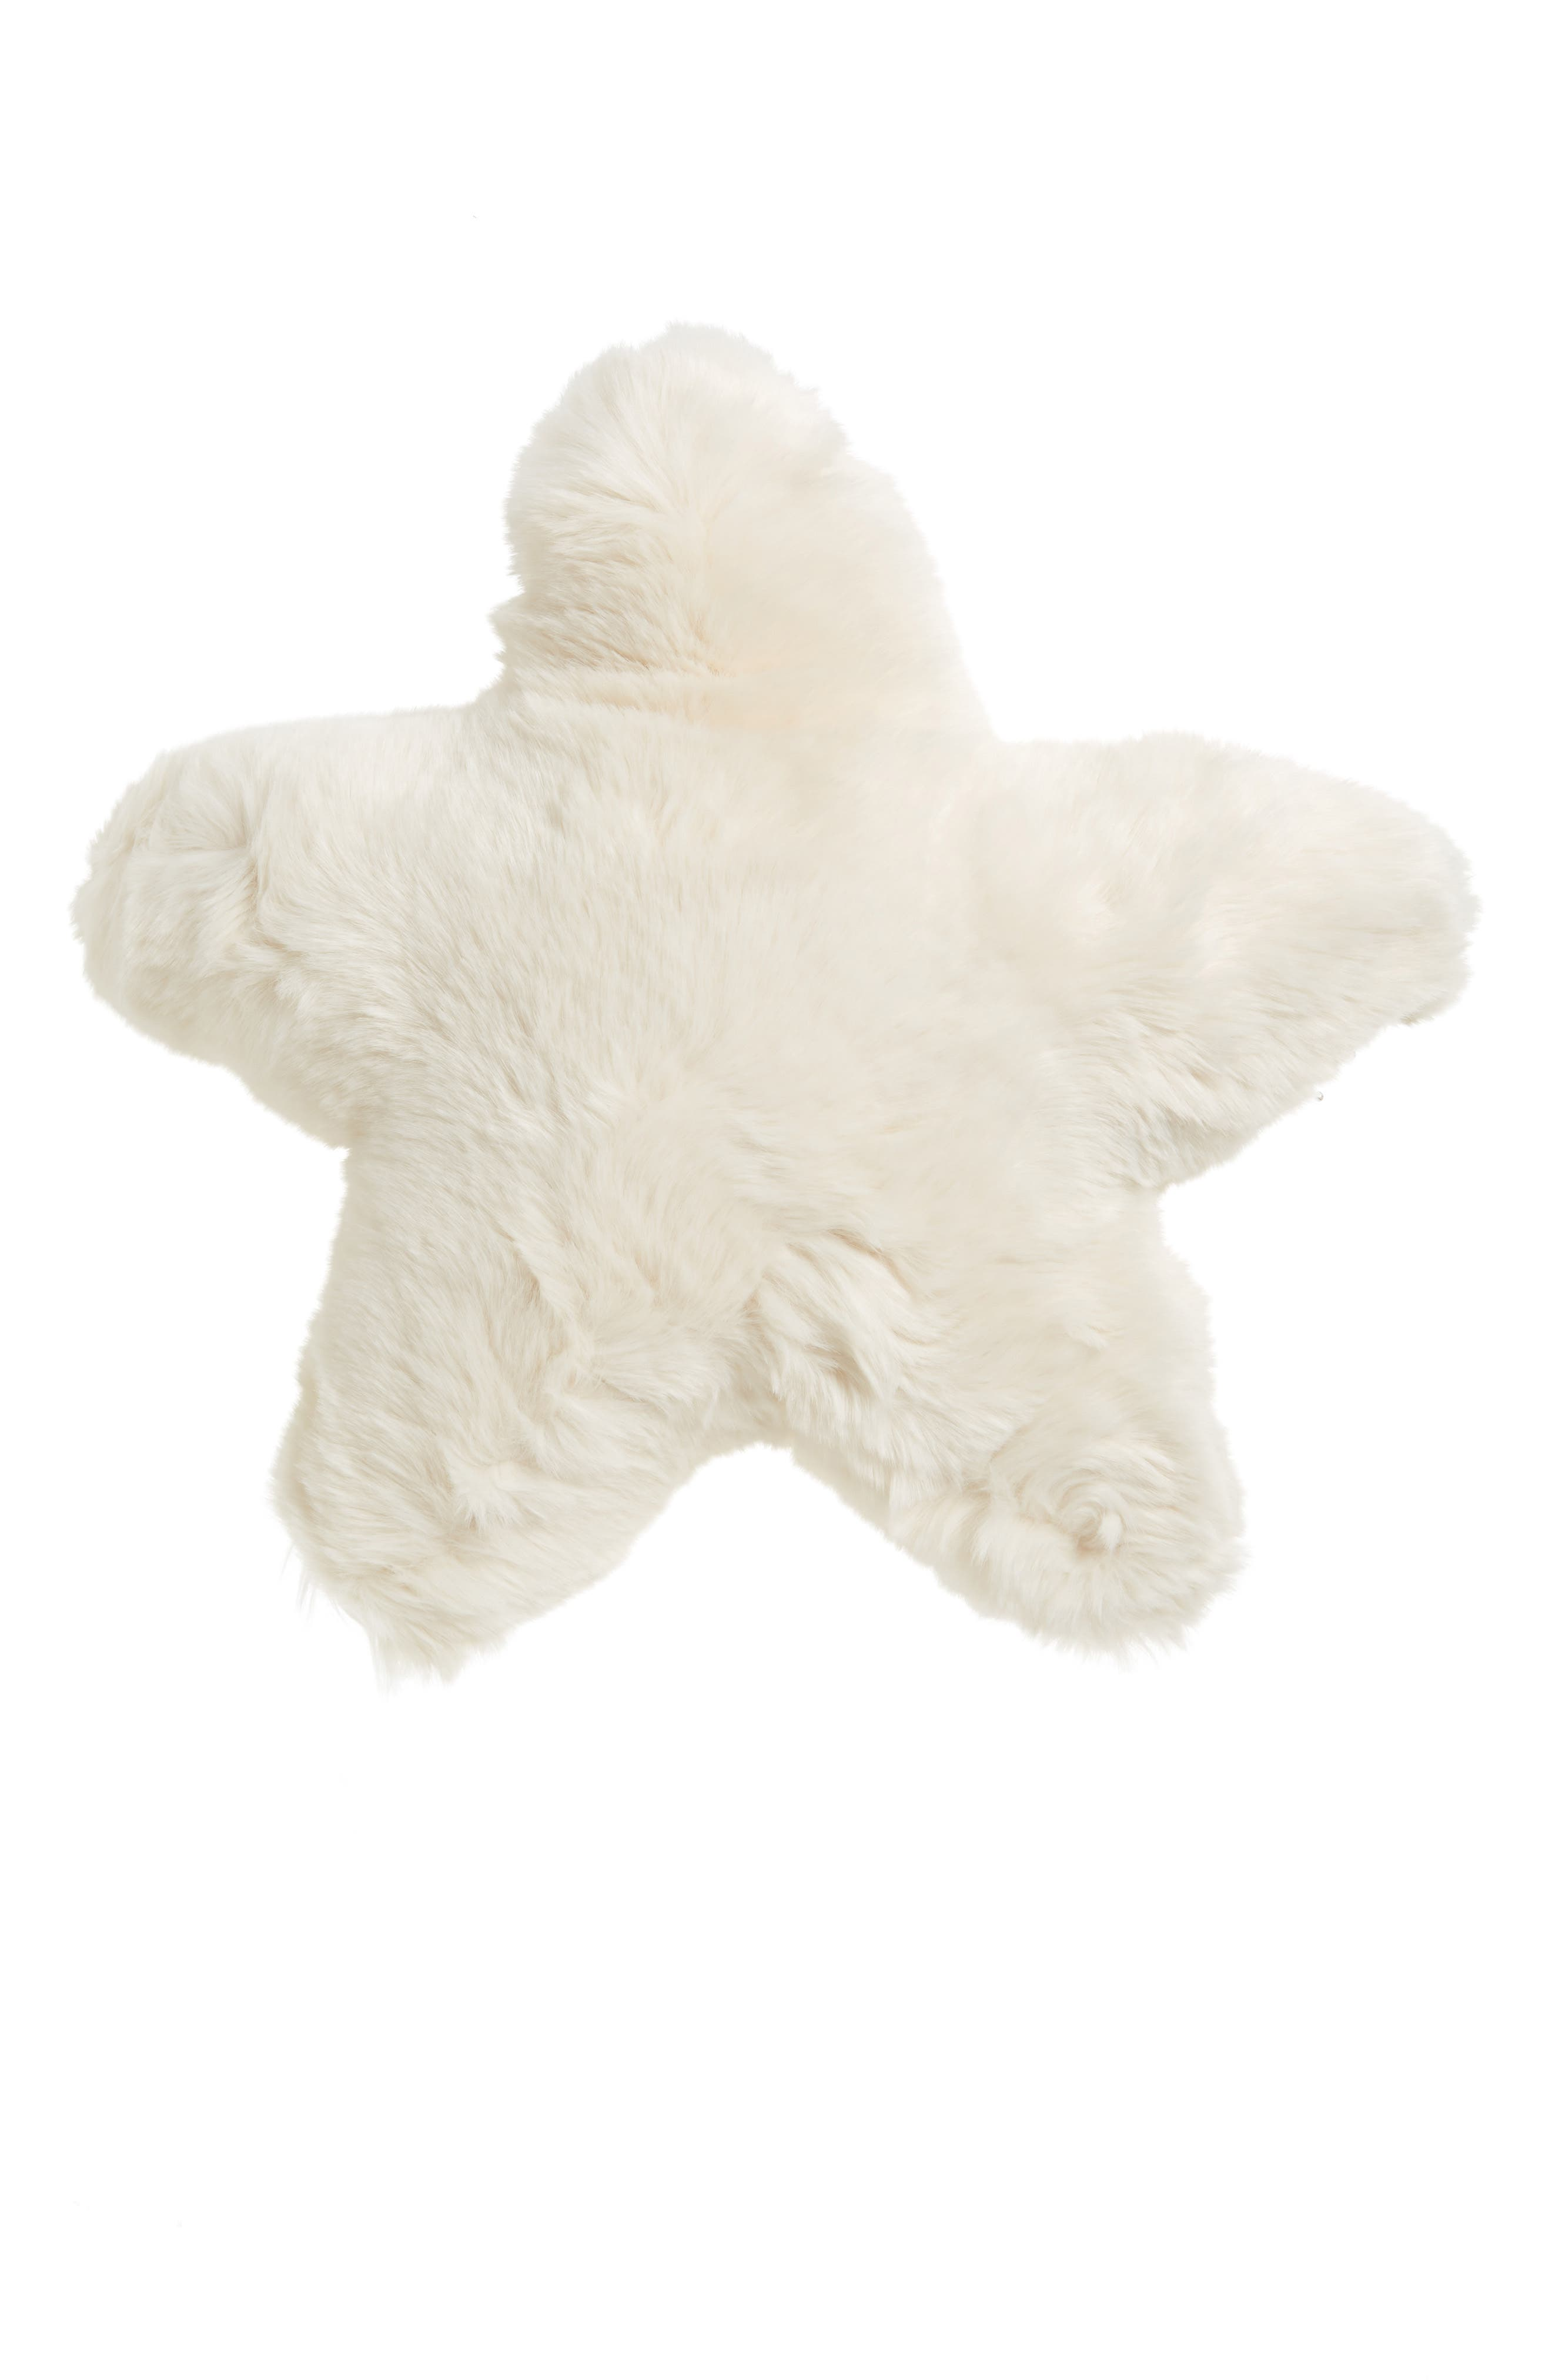 Nordstrom at Home Cuddle Up Faux Fur Star Pillow